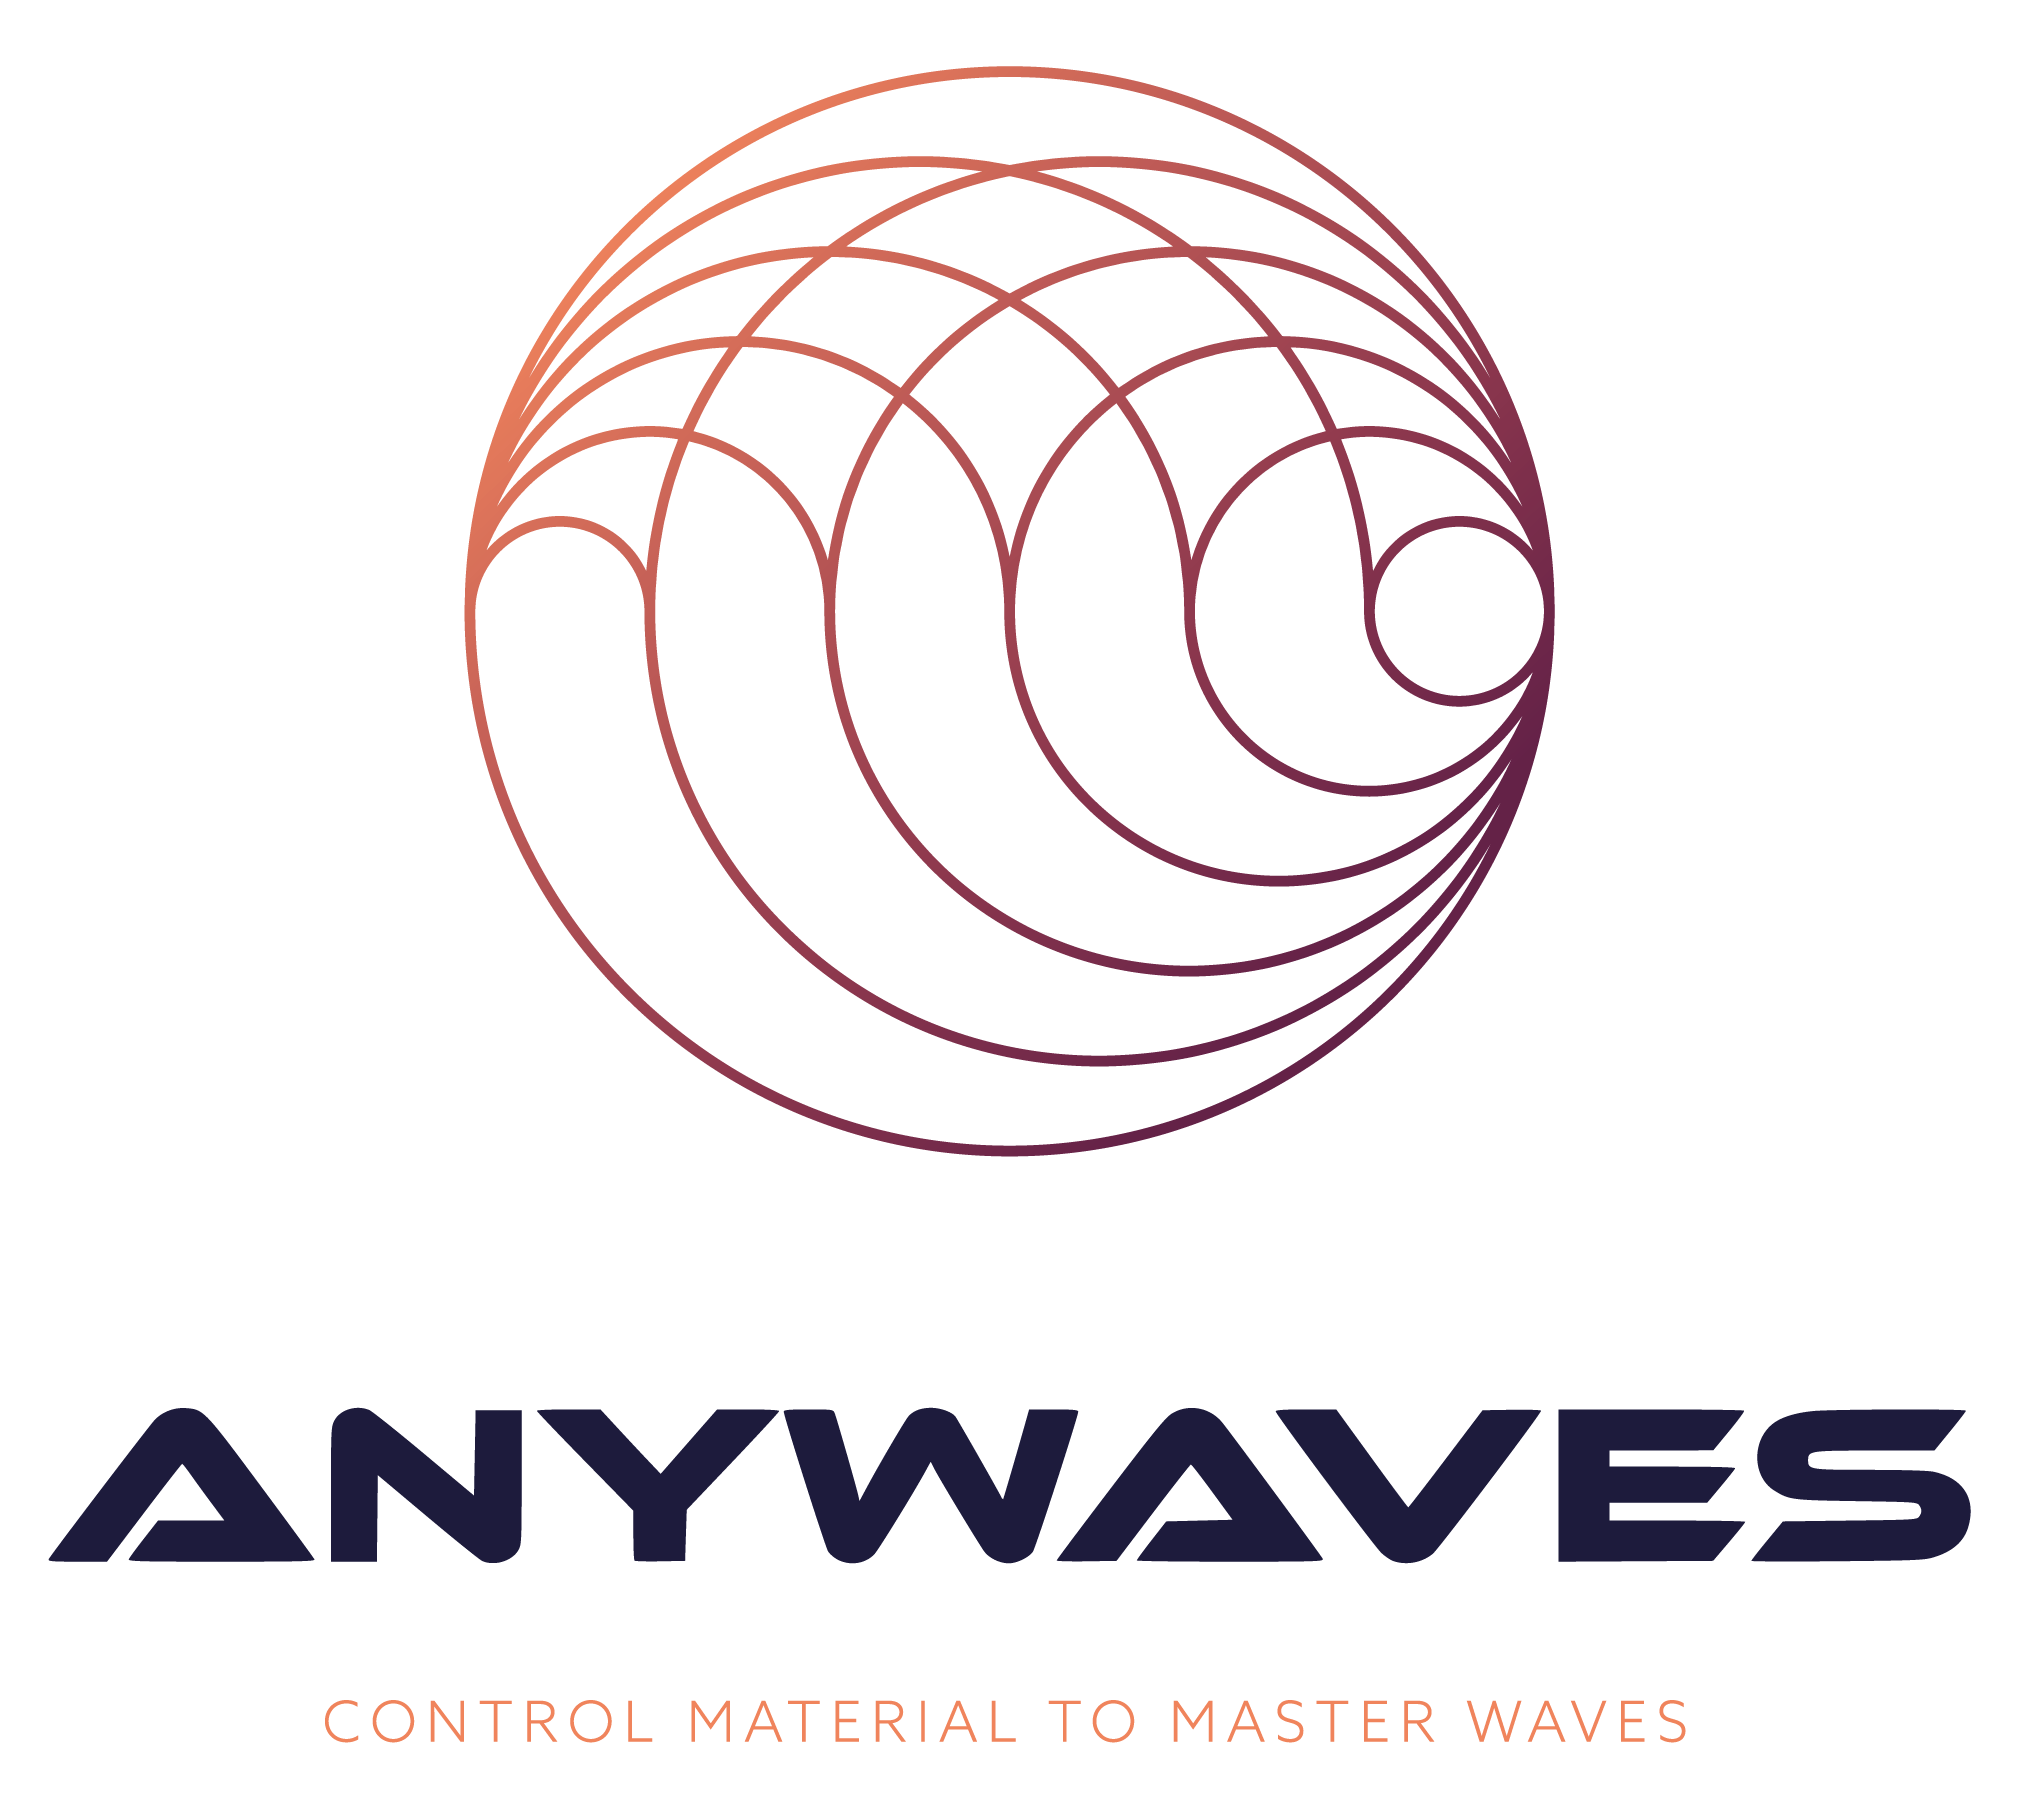 Anywaves logo